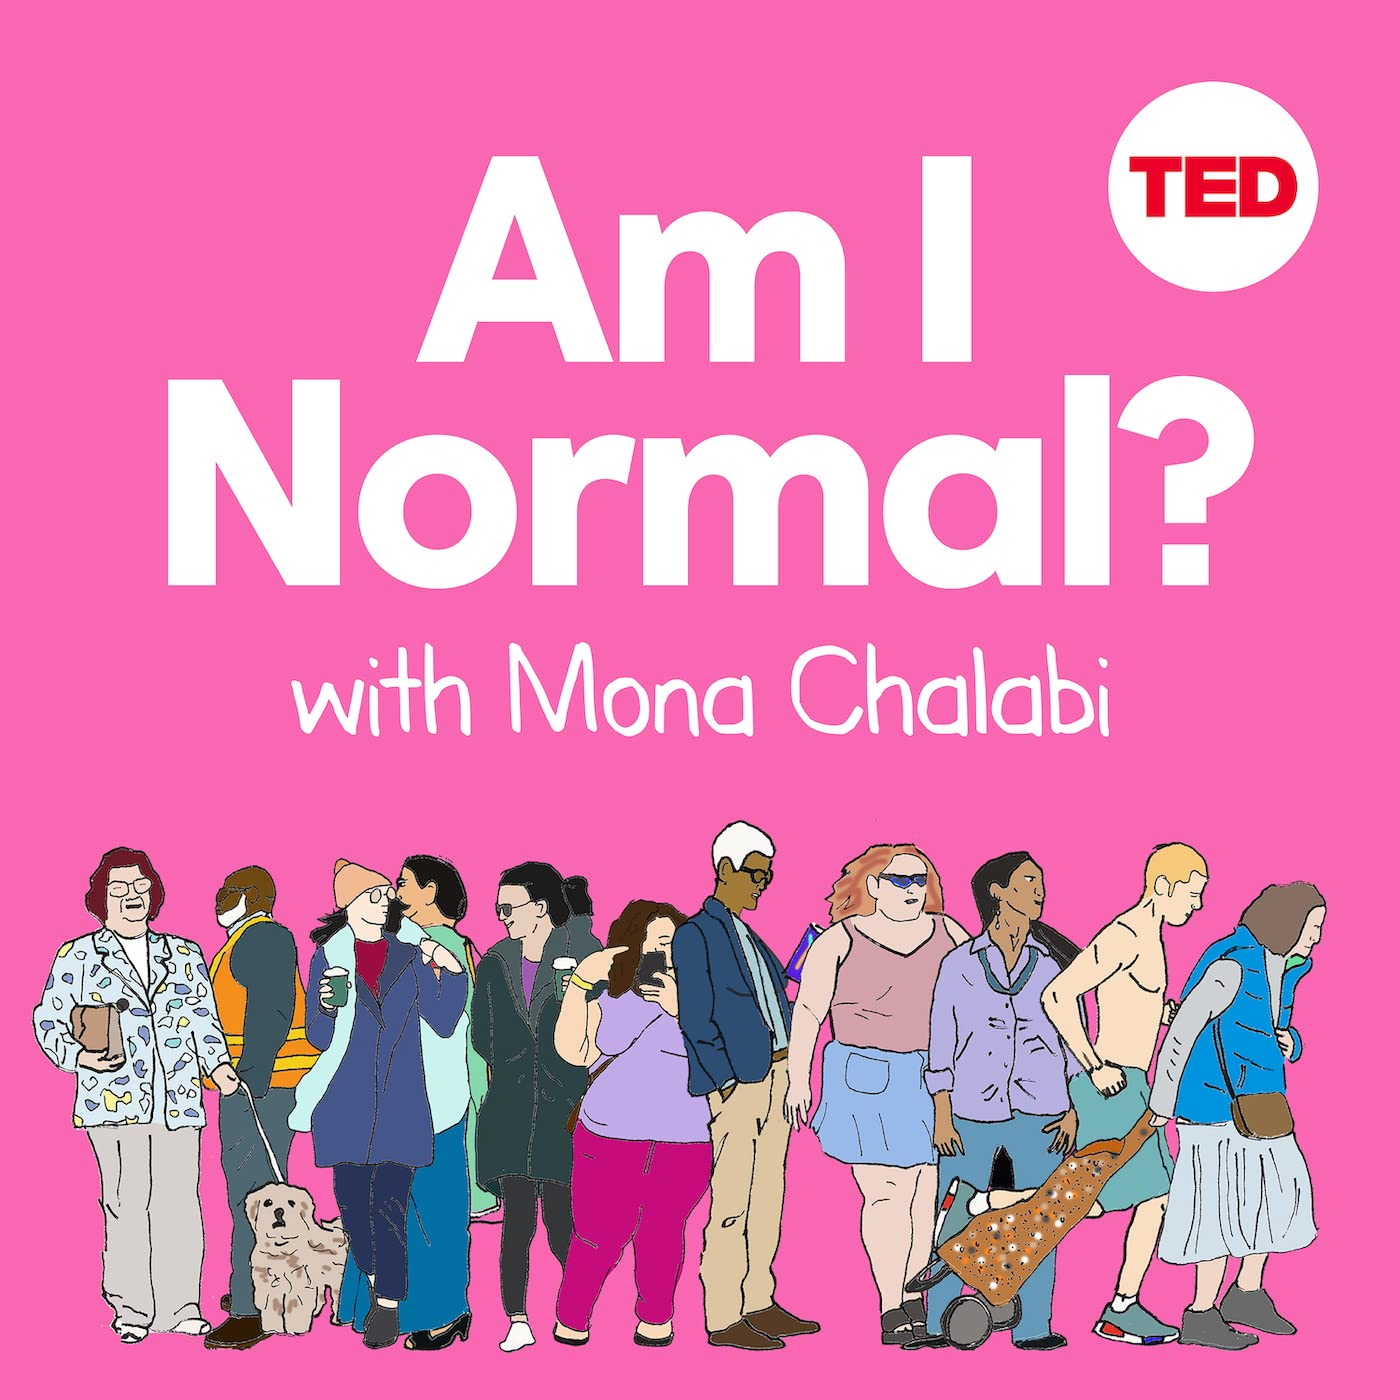 Am I Normal? with Mona Chalabi